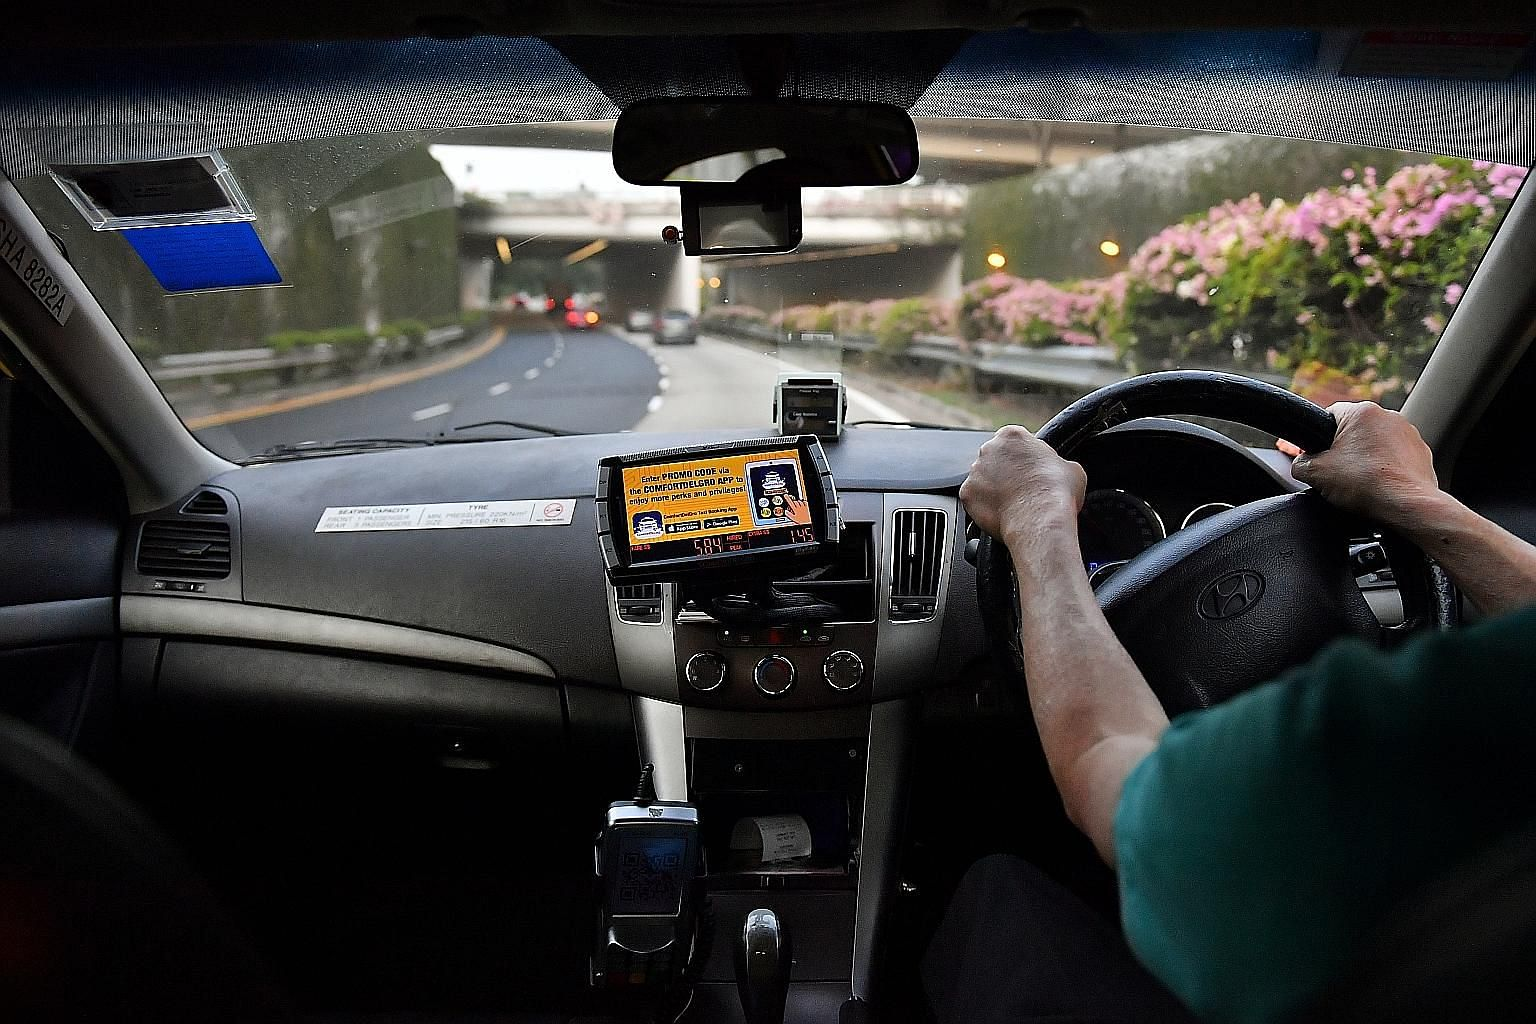 In announcing that audio recordings would be allowed inside taxis and private-hire cars, the LTA cited a poll that found 90 per cent of respondents in favour of such recordings. A closer look at the survey, which polled 1,000 residents, reveals that